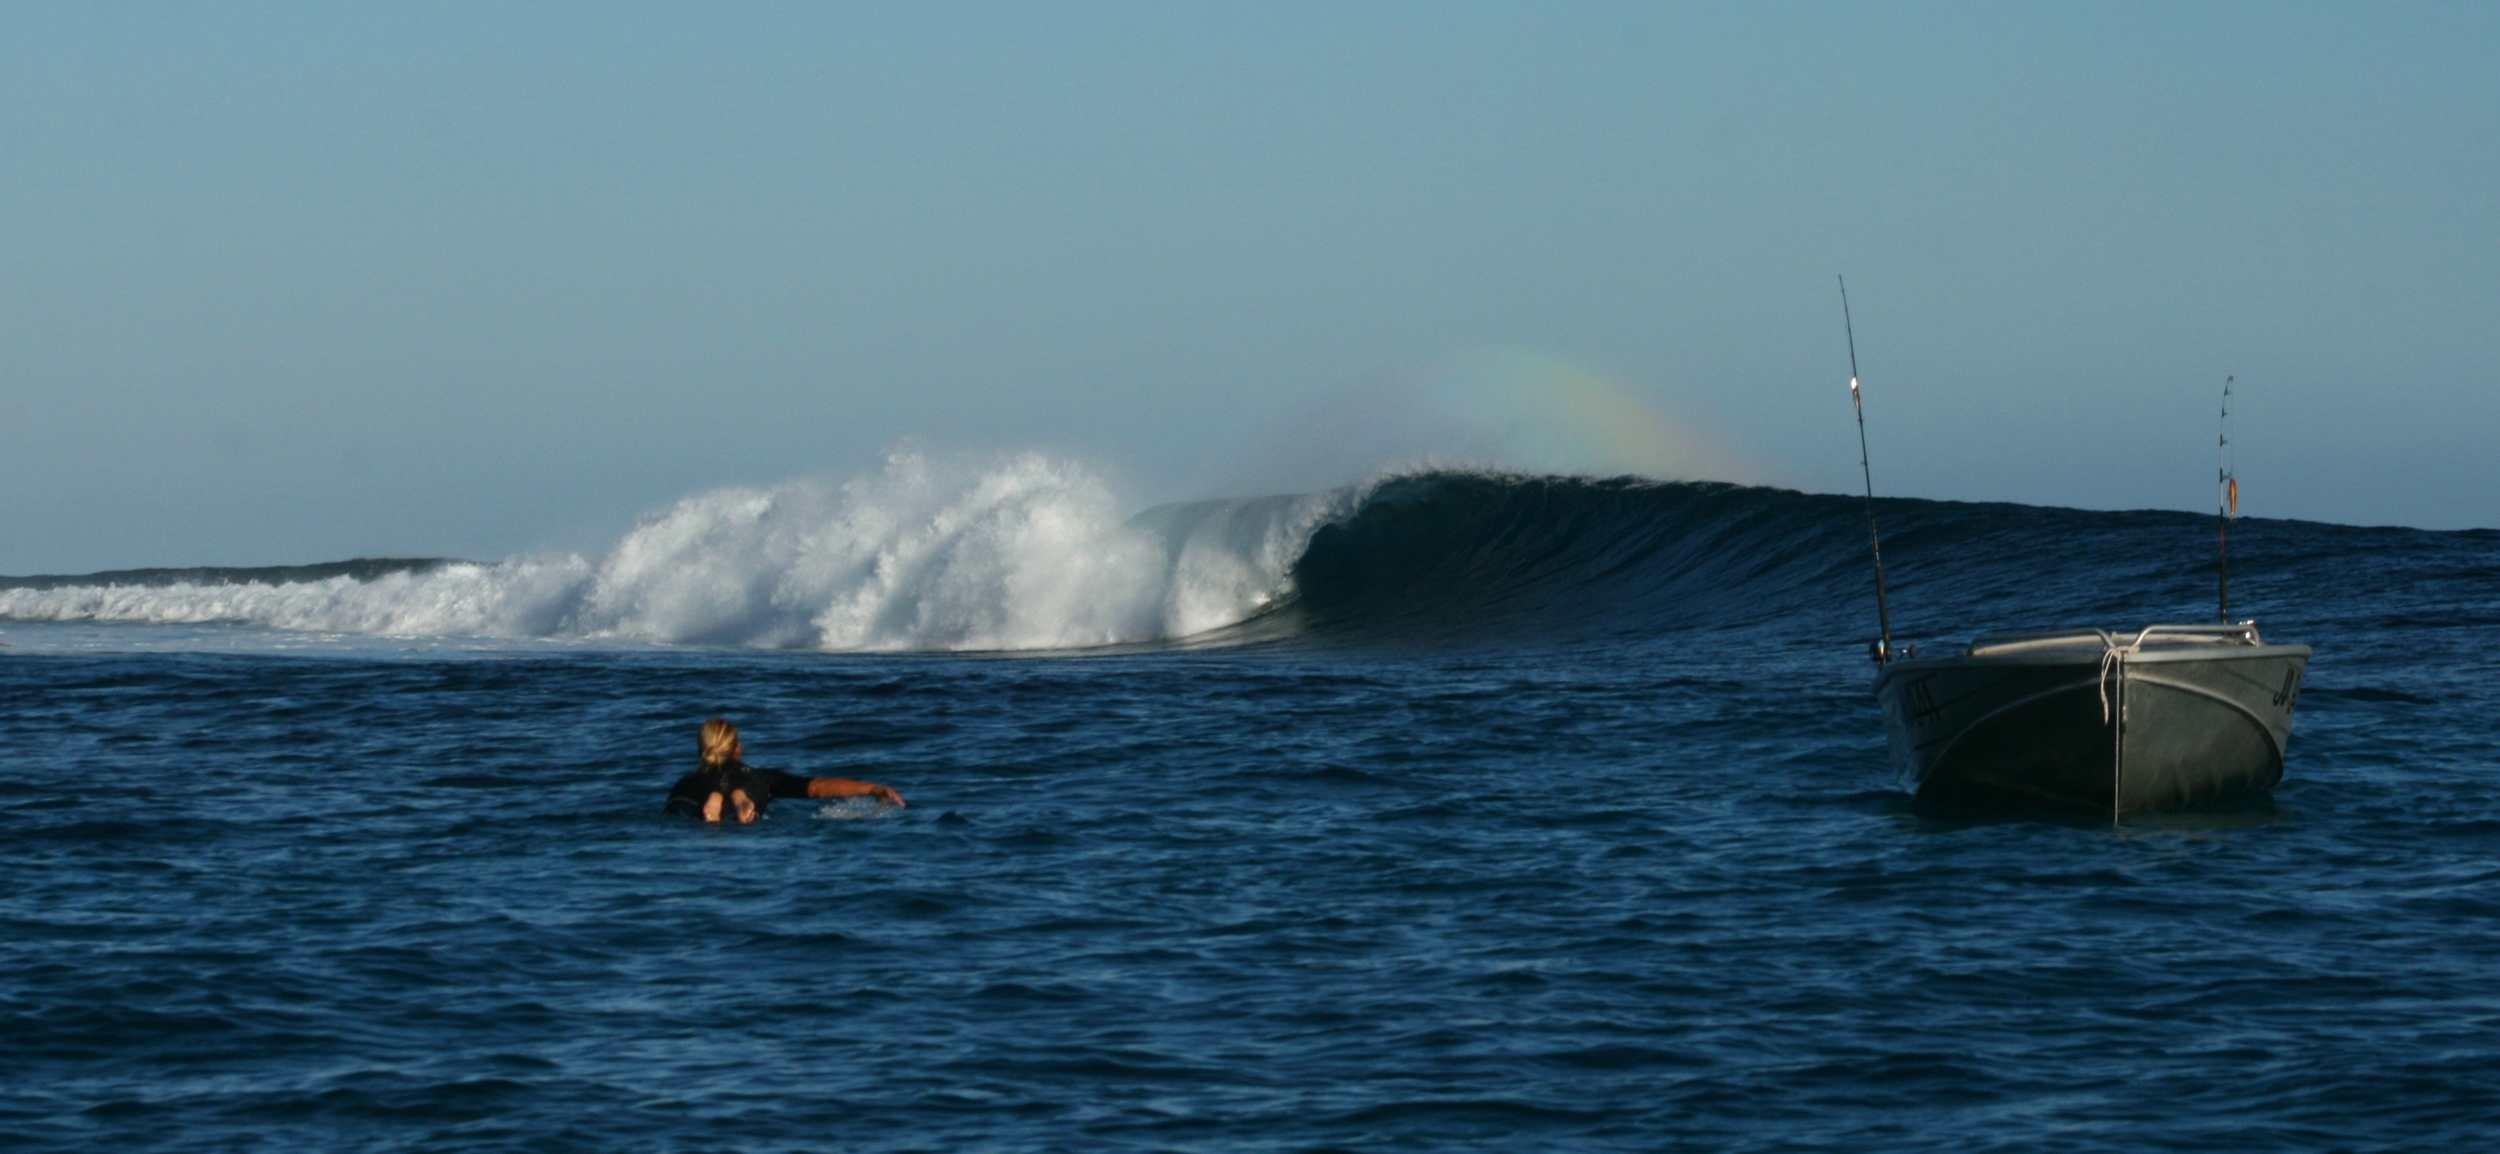 2nd day, swell has dropped off, cleaned up and the morning offshore is doing the thing. Photo: Old Cat Fish Slater